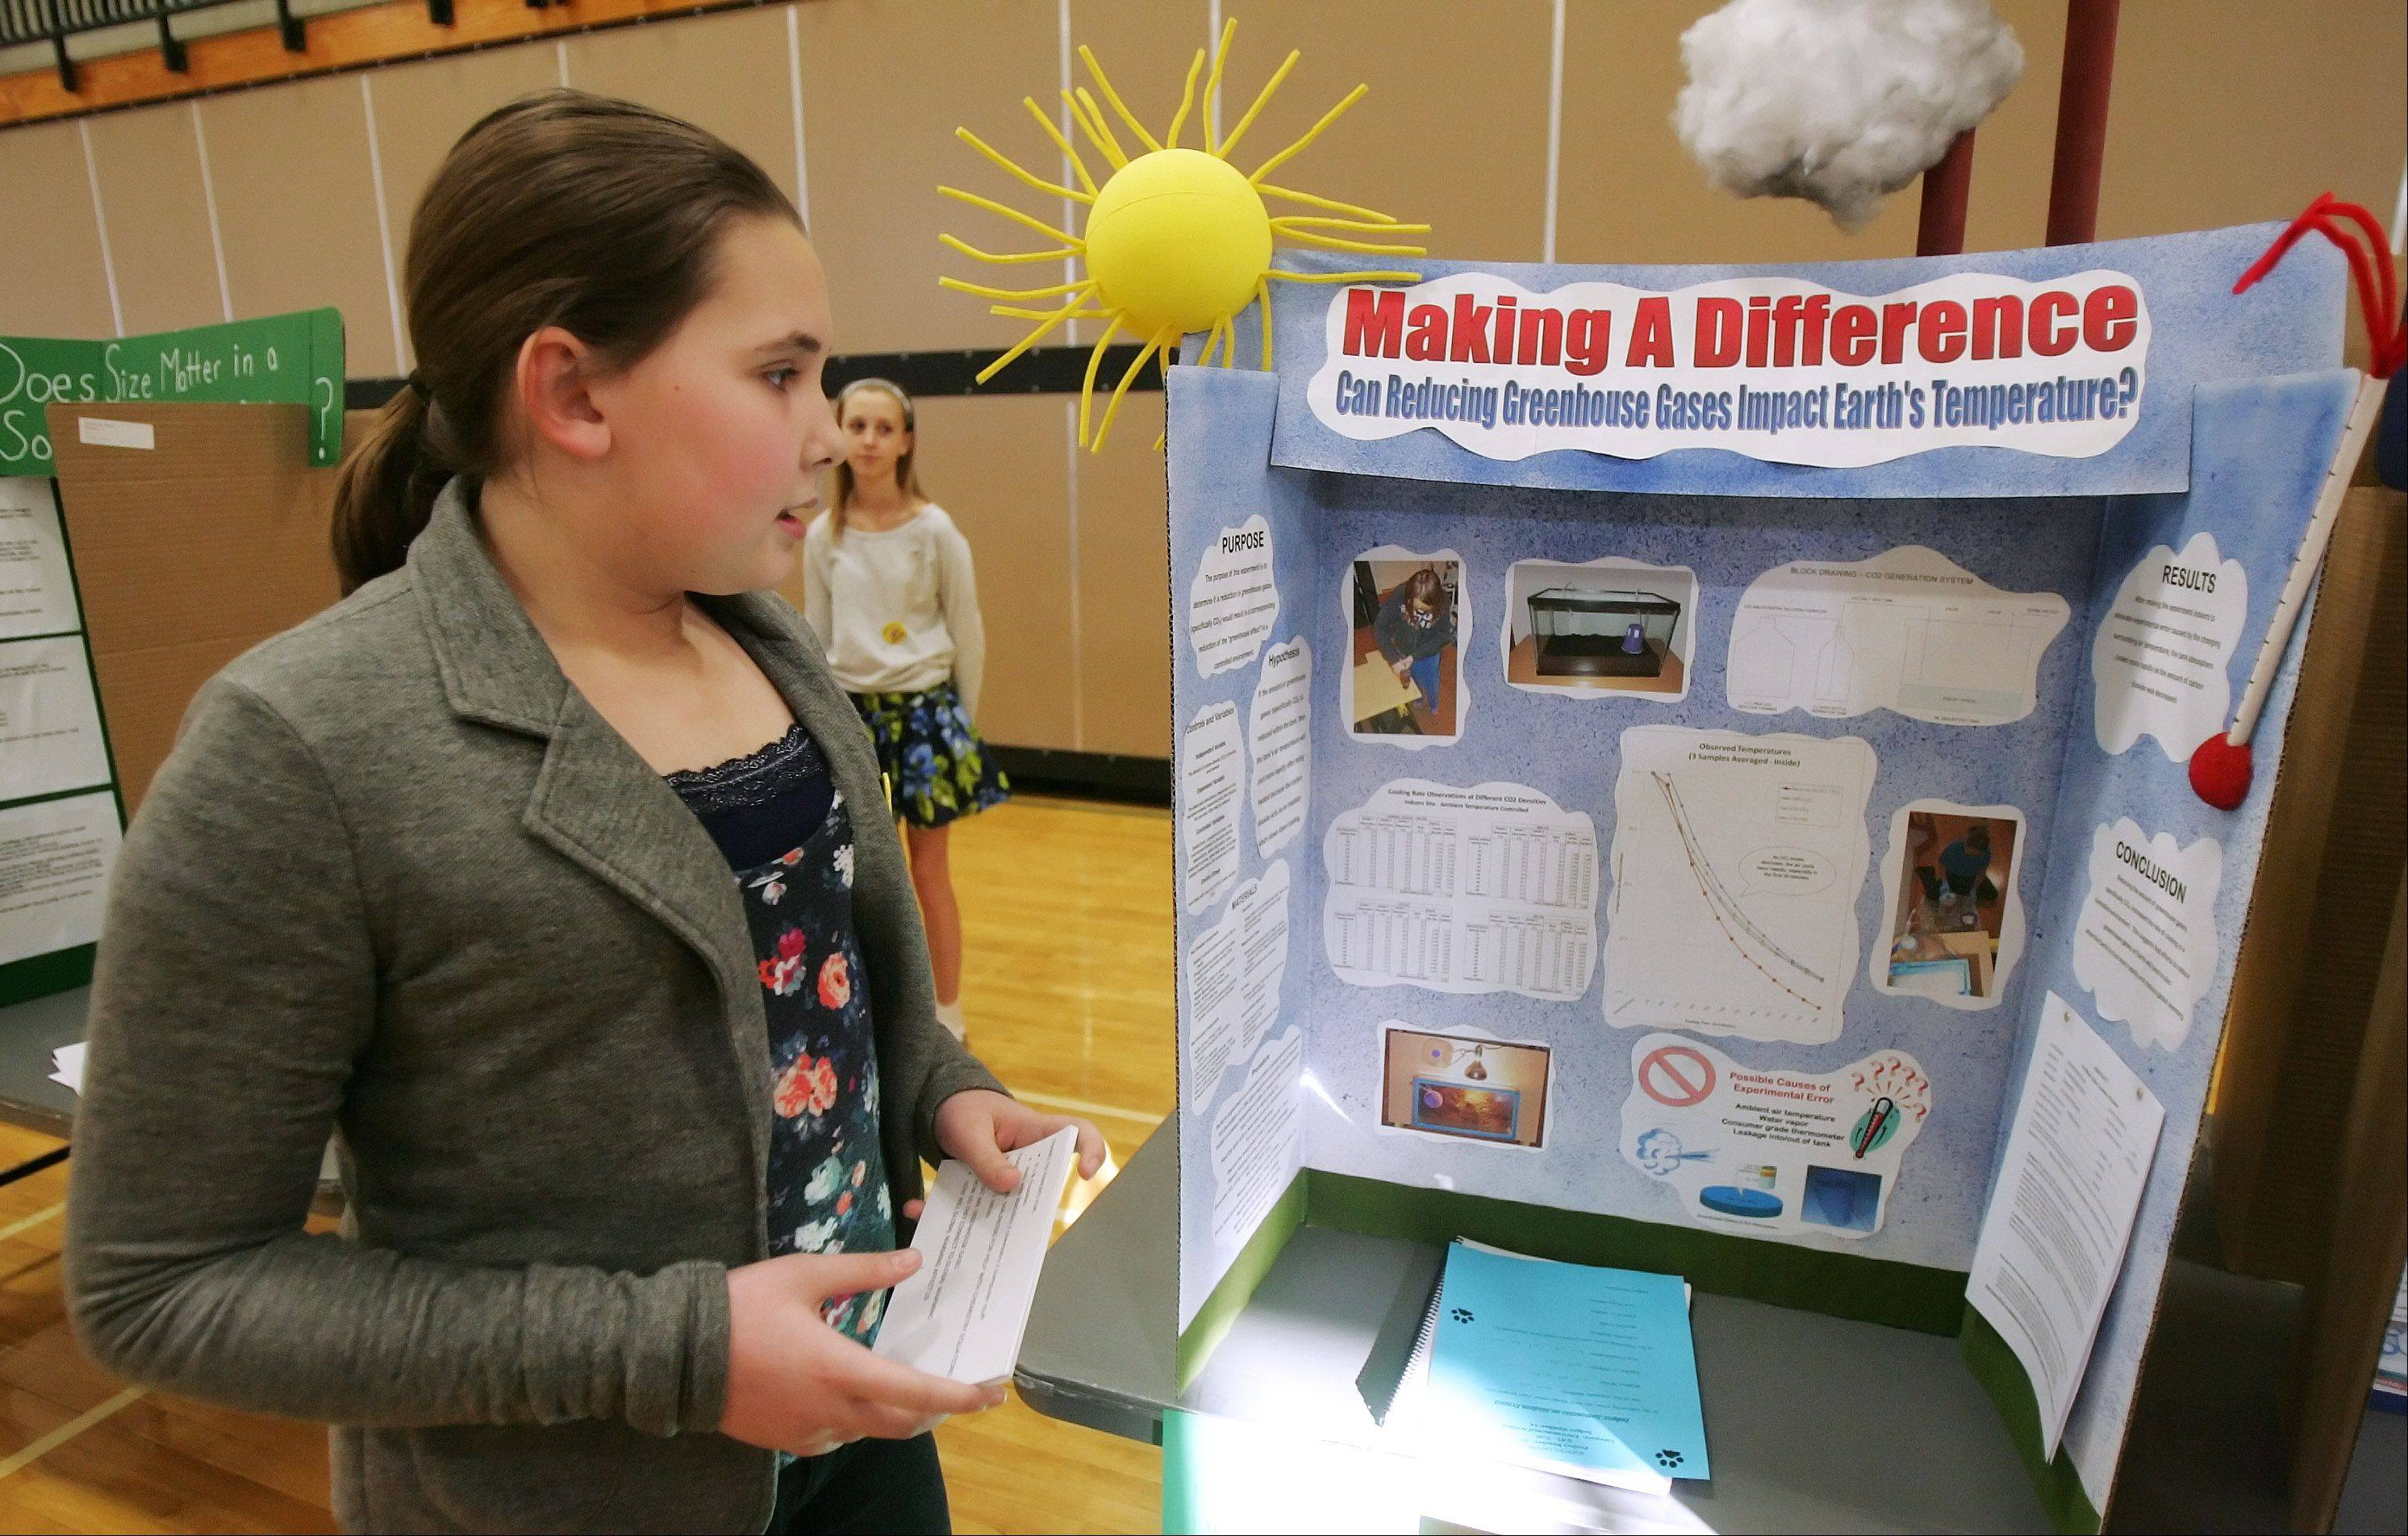 Kathryn Larson explains how she made a carbon dioxide generator to test her theories on global warming and its affects on the Earth during the judging of the 2013 Woodland Middle School seventh grade science fair in Gurnee.